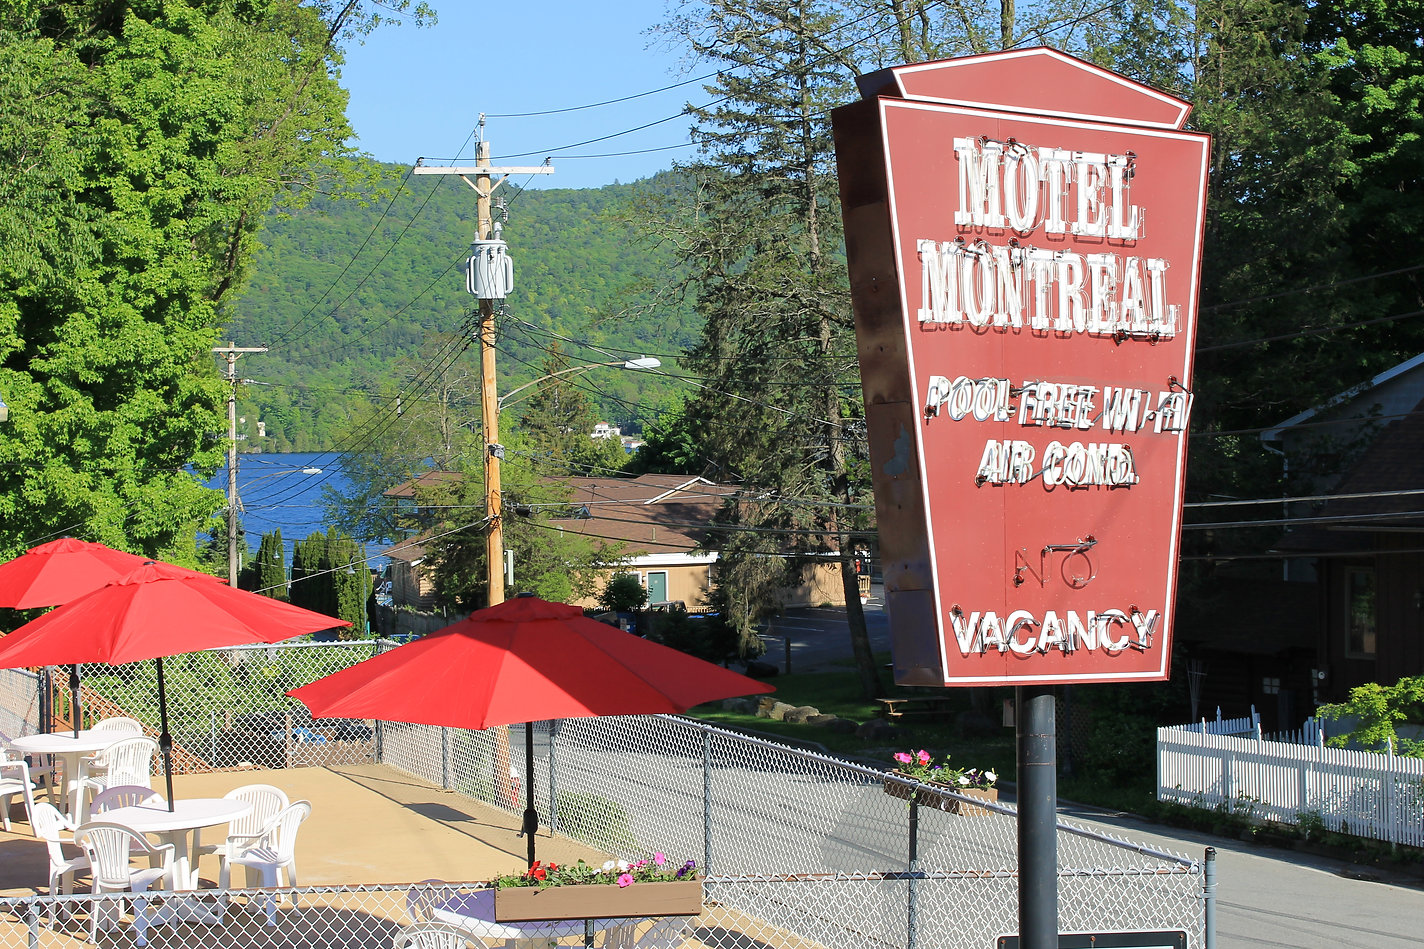 Lake George Motel Montreal neon sign and sundeck with red umbrellas and Lake George views